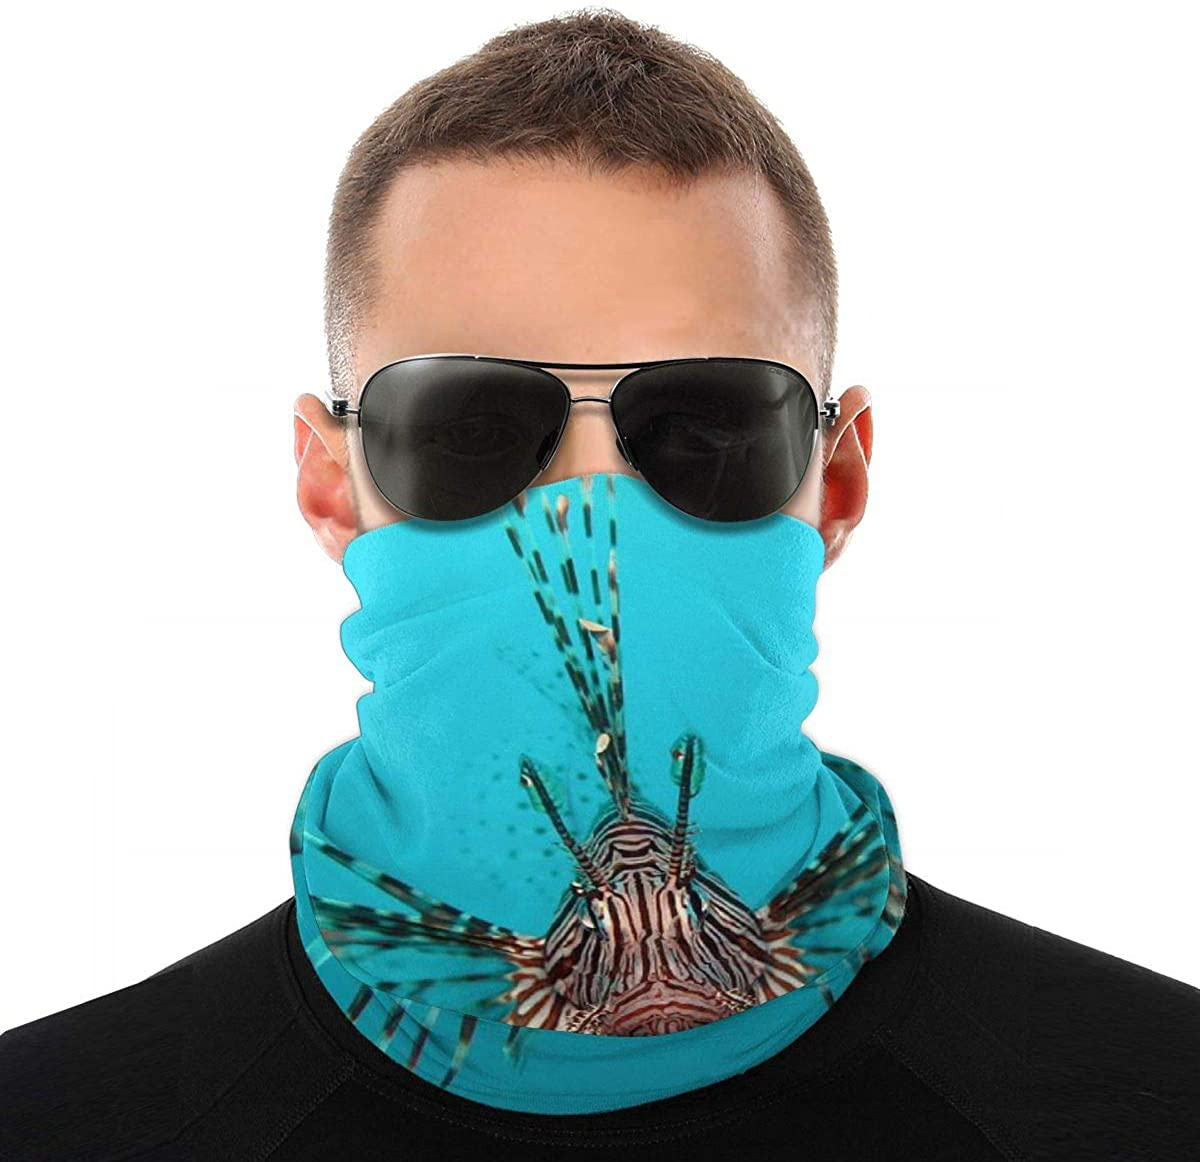 Pterois volitans Manado-e edit Neck Gaiter Unisex adult Windproof Mask Dust Sports novelty Face Mask Half Balaclava Weather bandana women men Outdoors Festivals